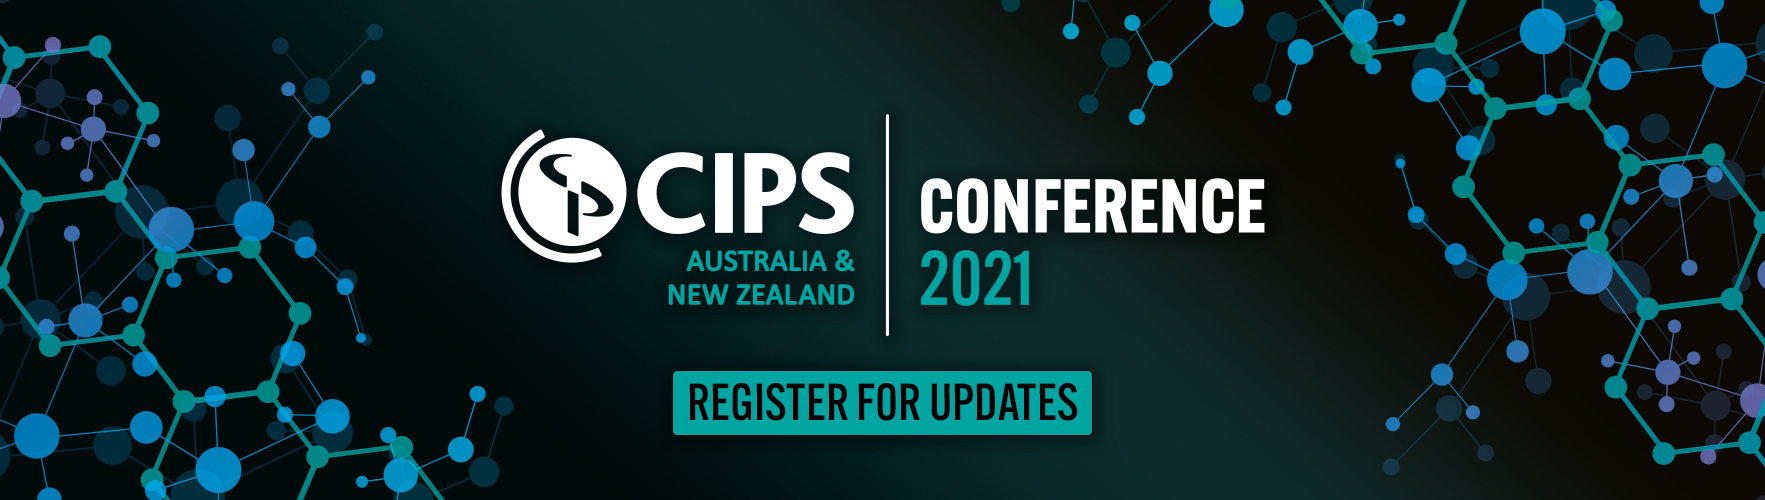 CIPS ANZ Conference